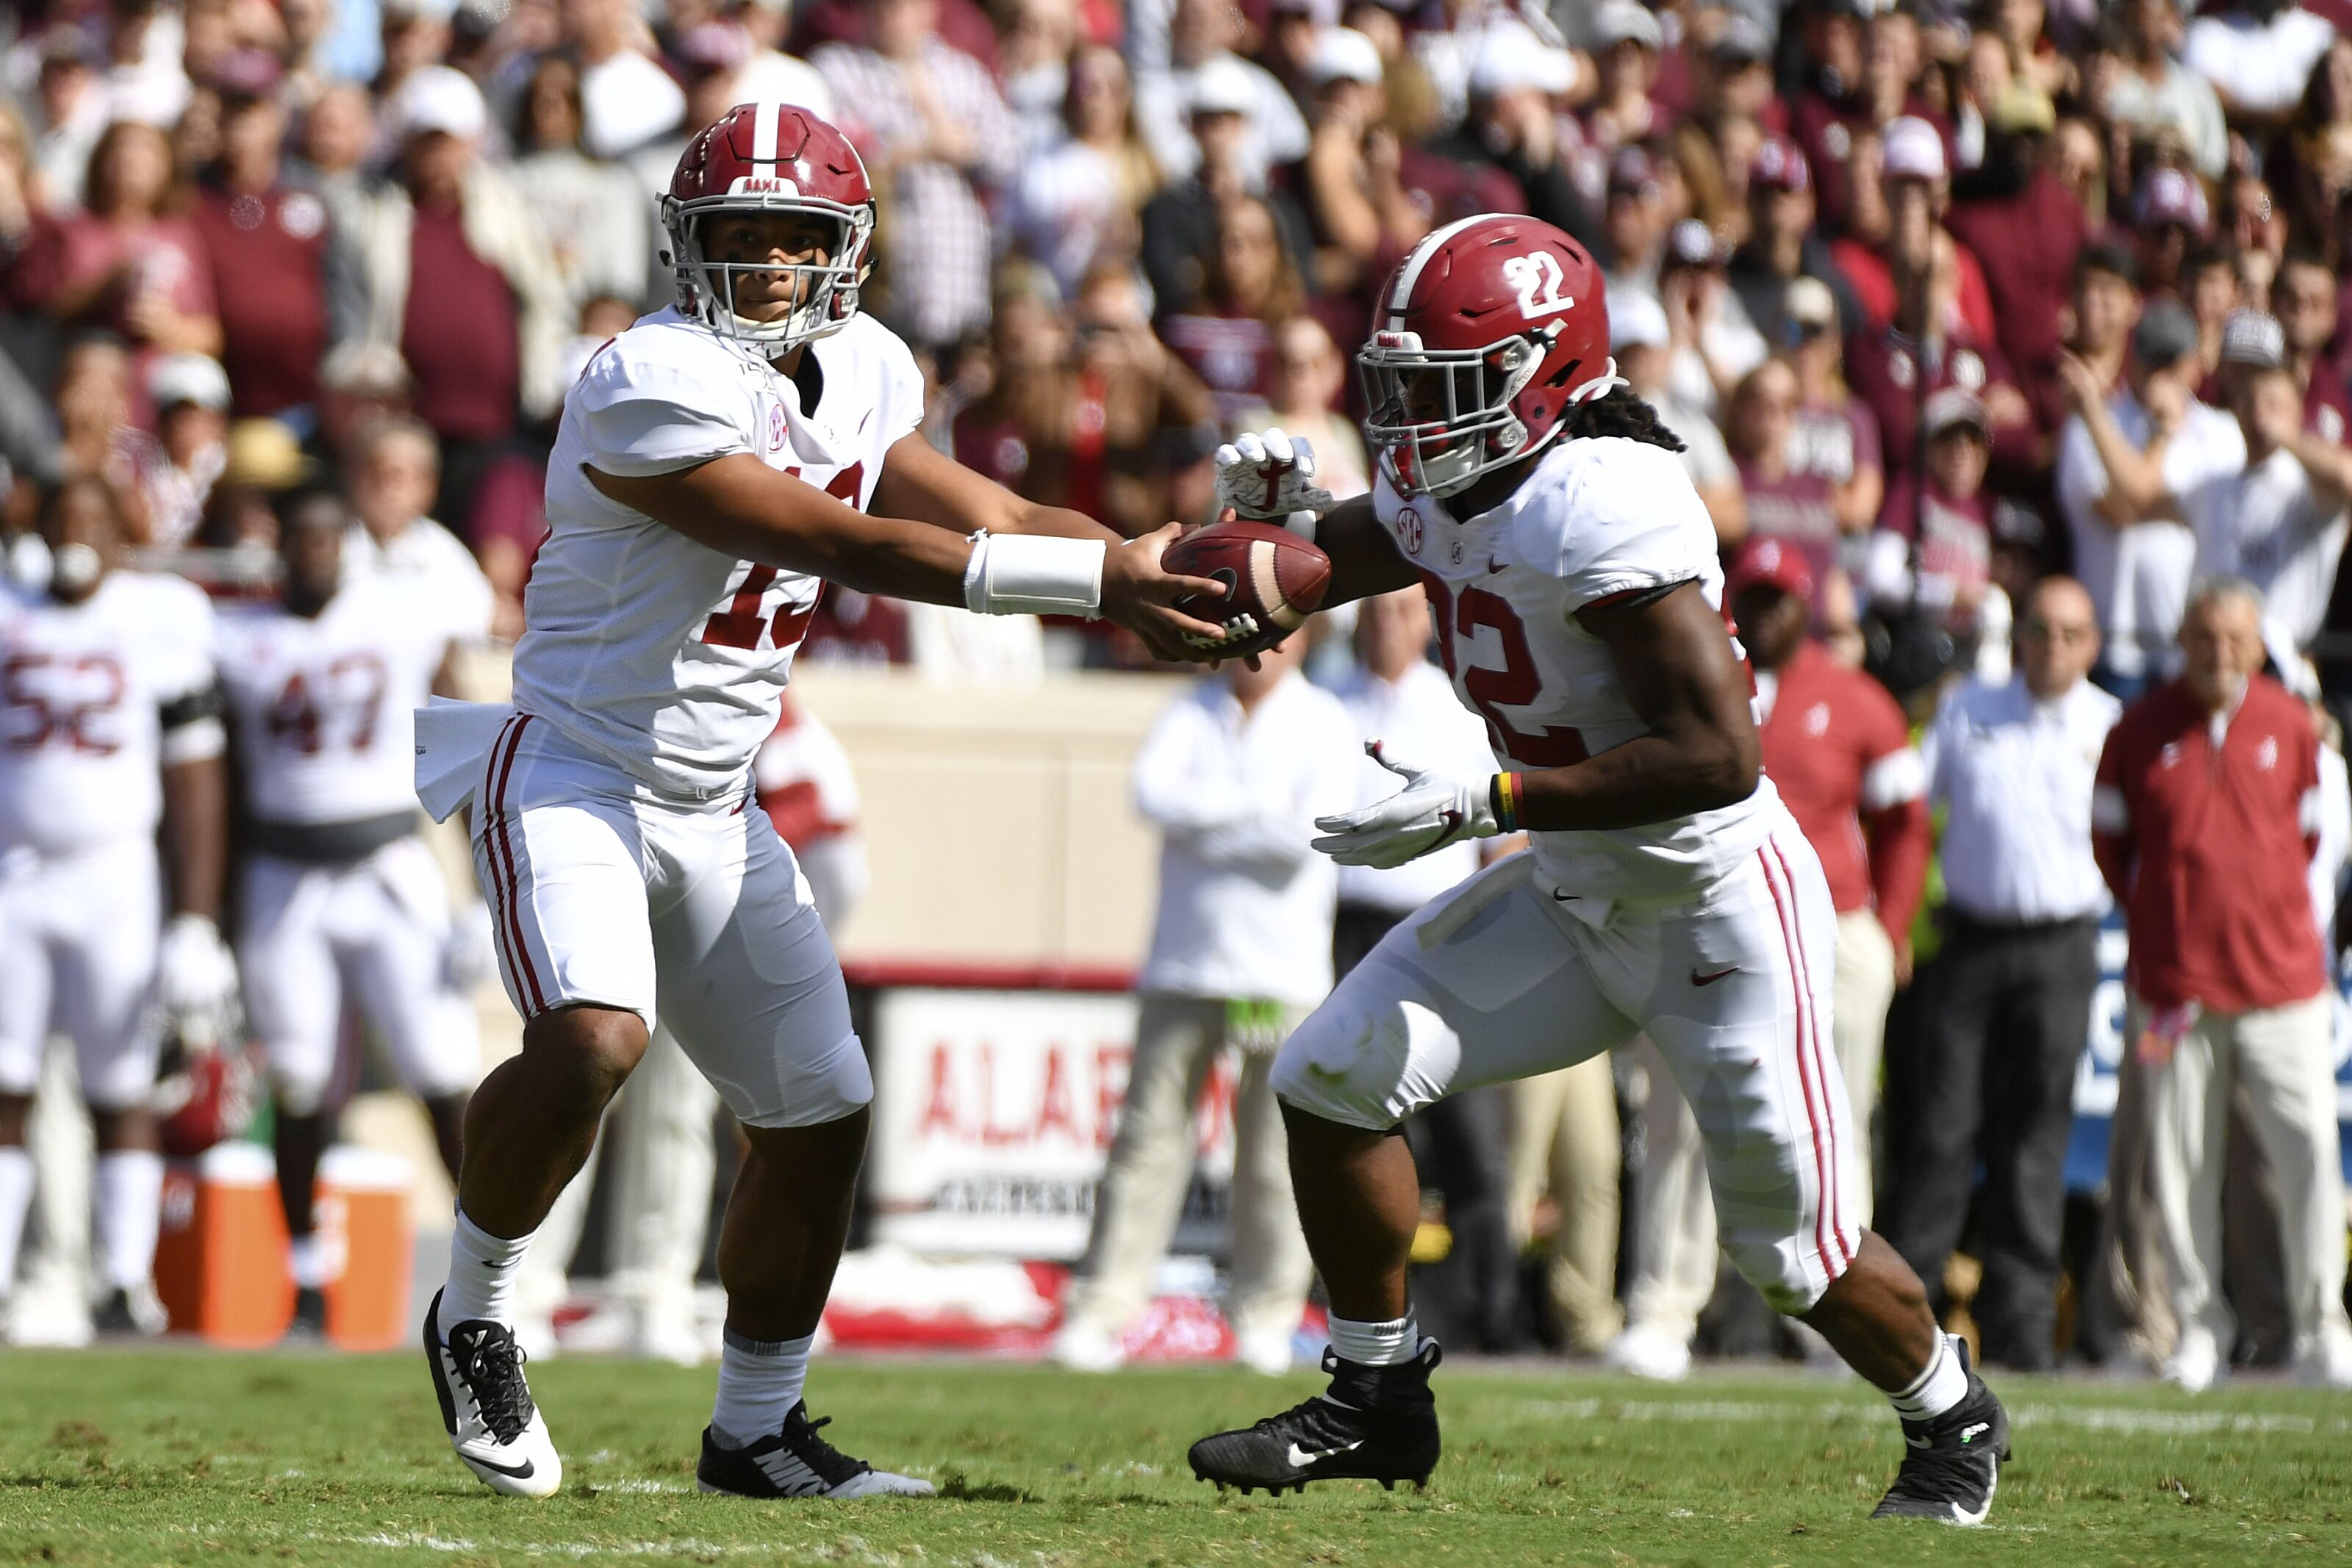 Tennessee football: Five Alabama Crimson Tide to watch for against Vols